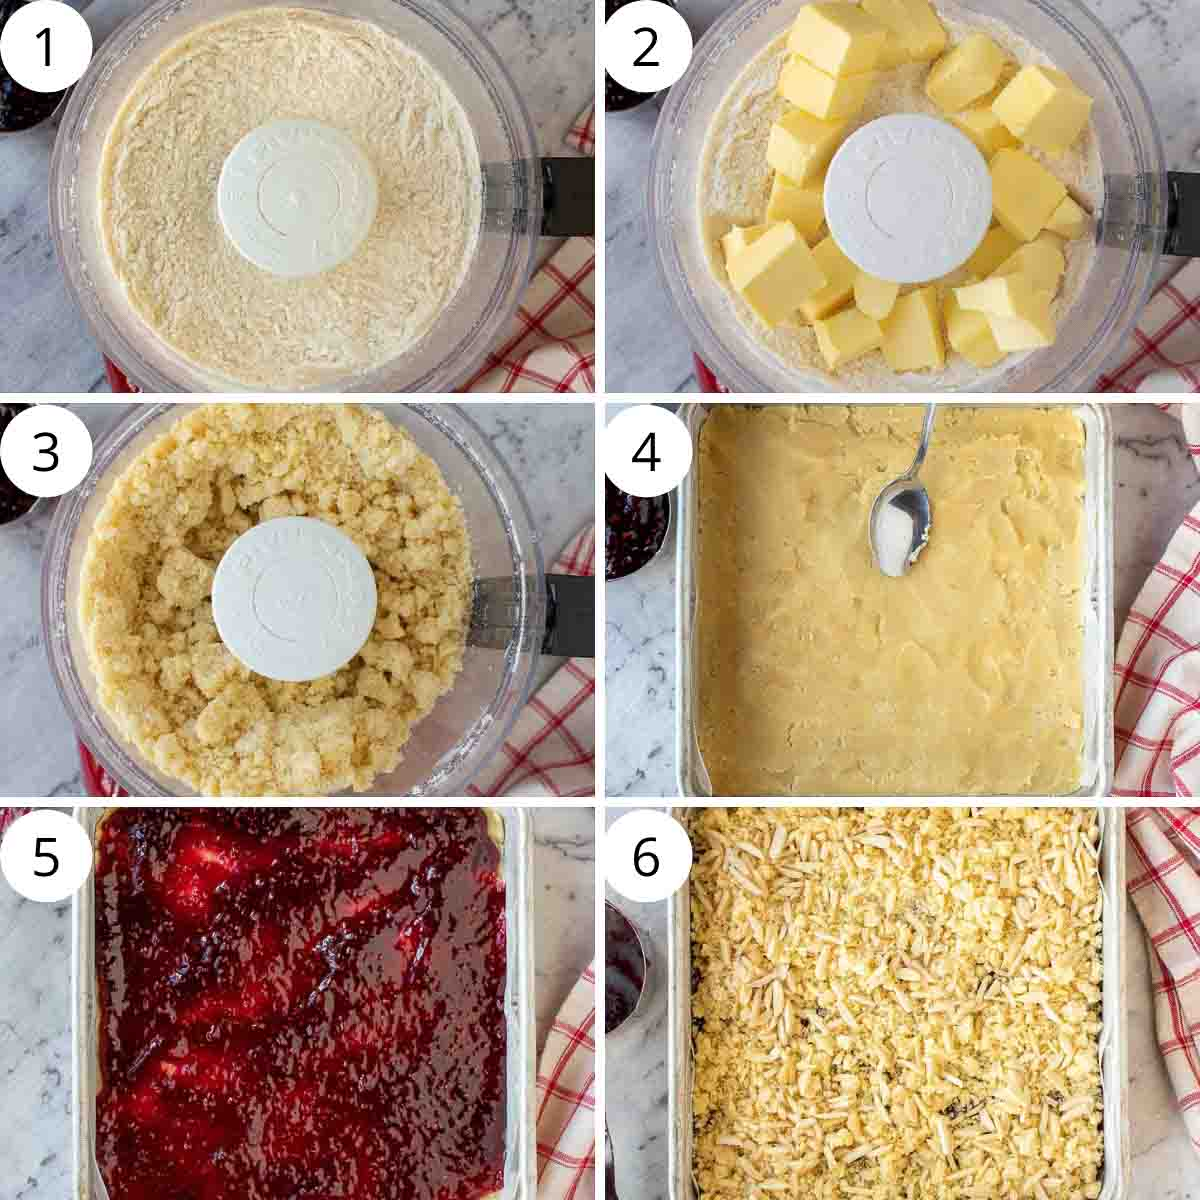 six-step photo collage showing how to make these raspberry and almond bars.